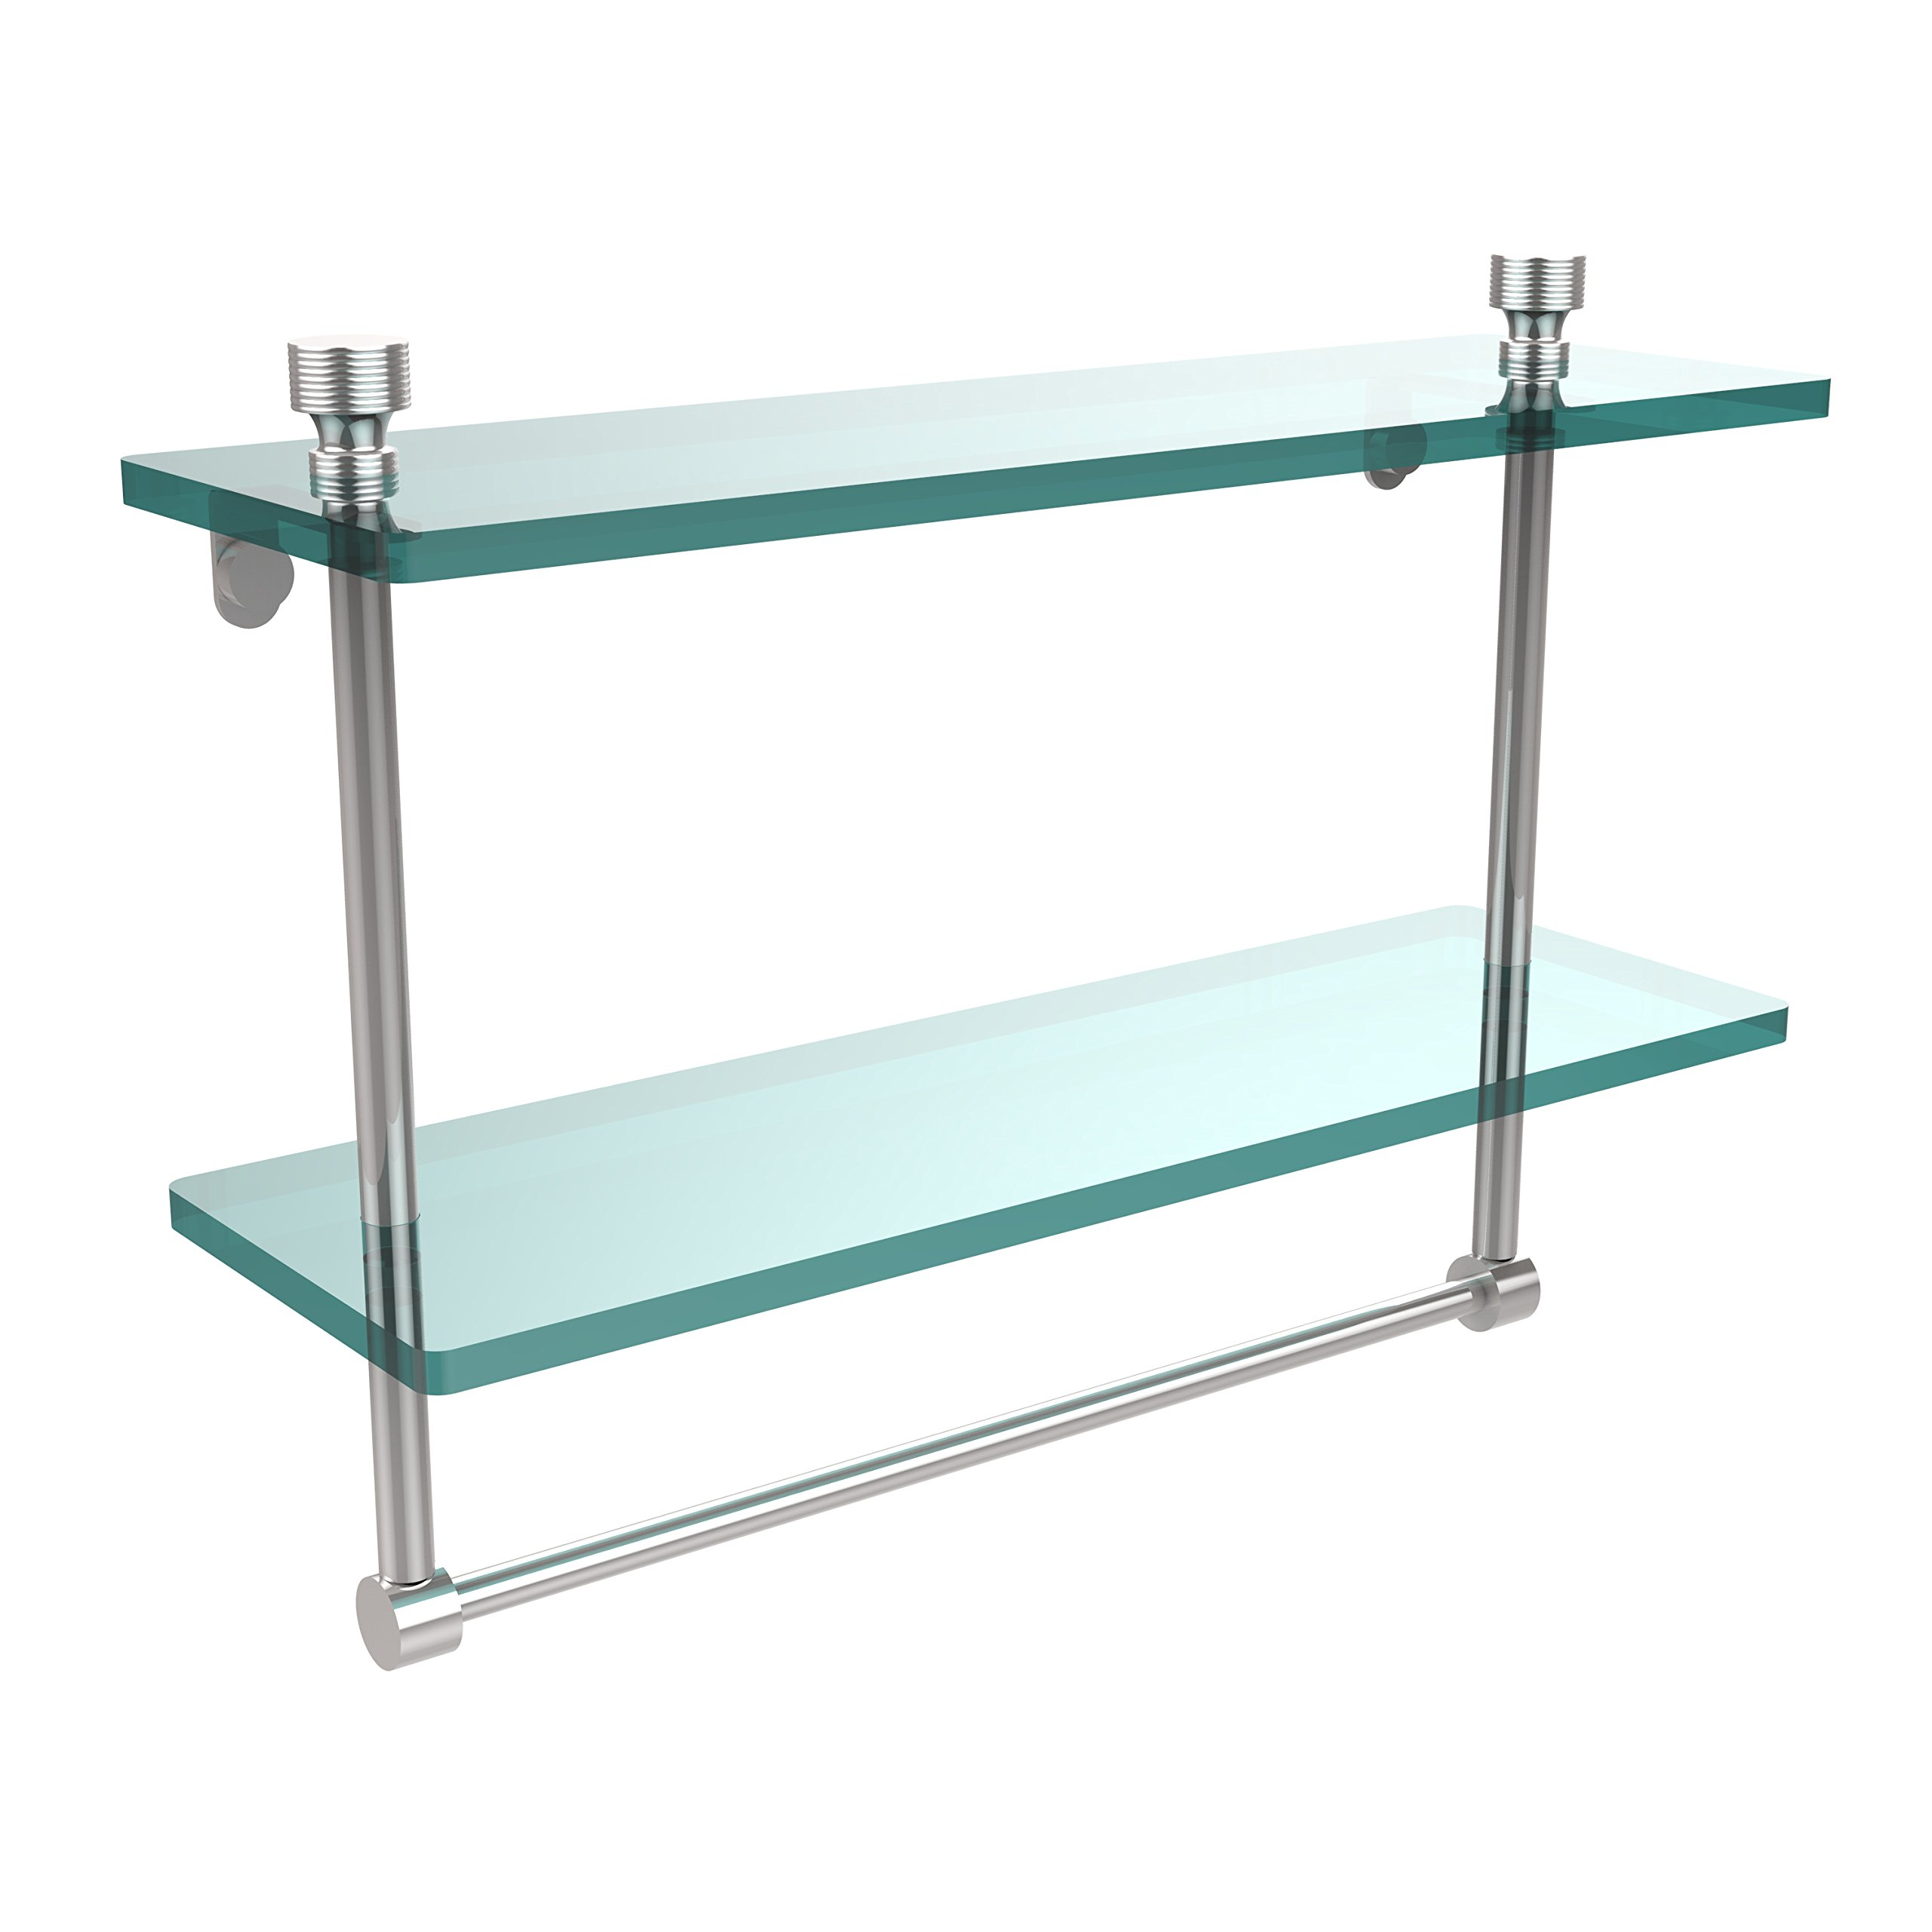 Allied Brass FT-2/16TB-PC Foxtrot Collection 16 Inch Two Tiered Glass Shelf with Integrated Towel Bar Polished Chrome